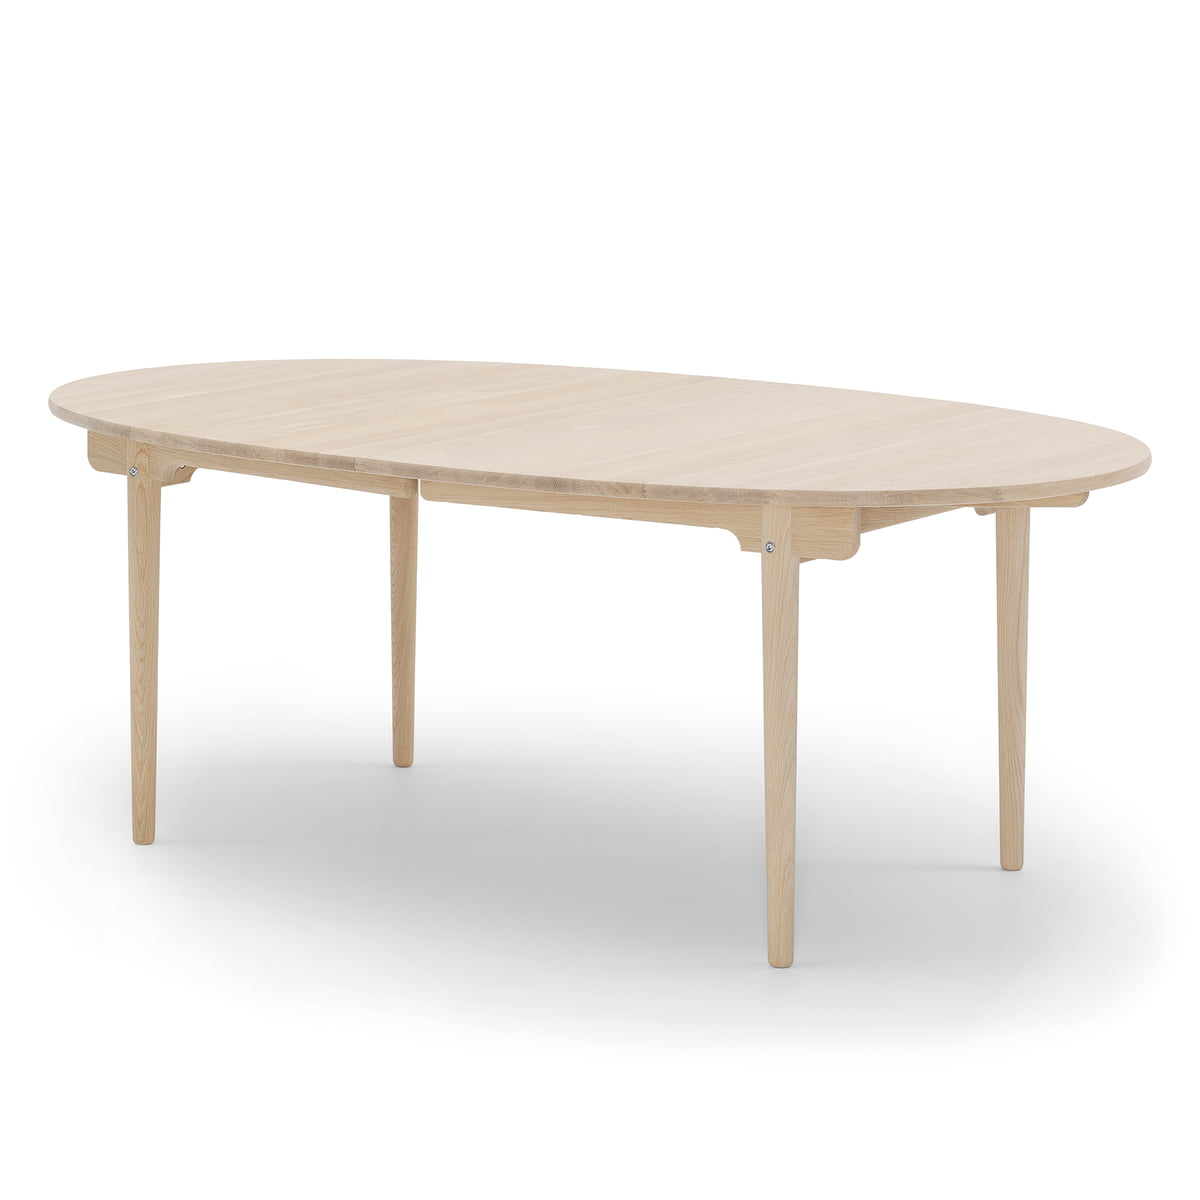 Table à manger CH338 de Carl Hansen | Connox